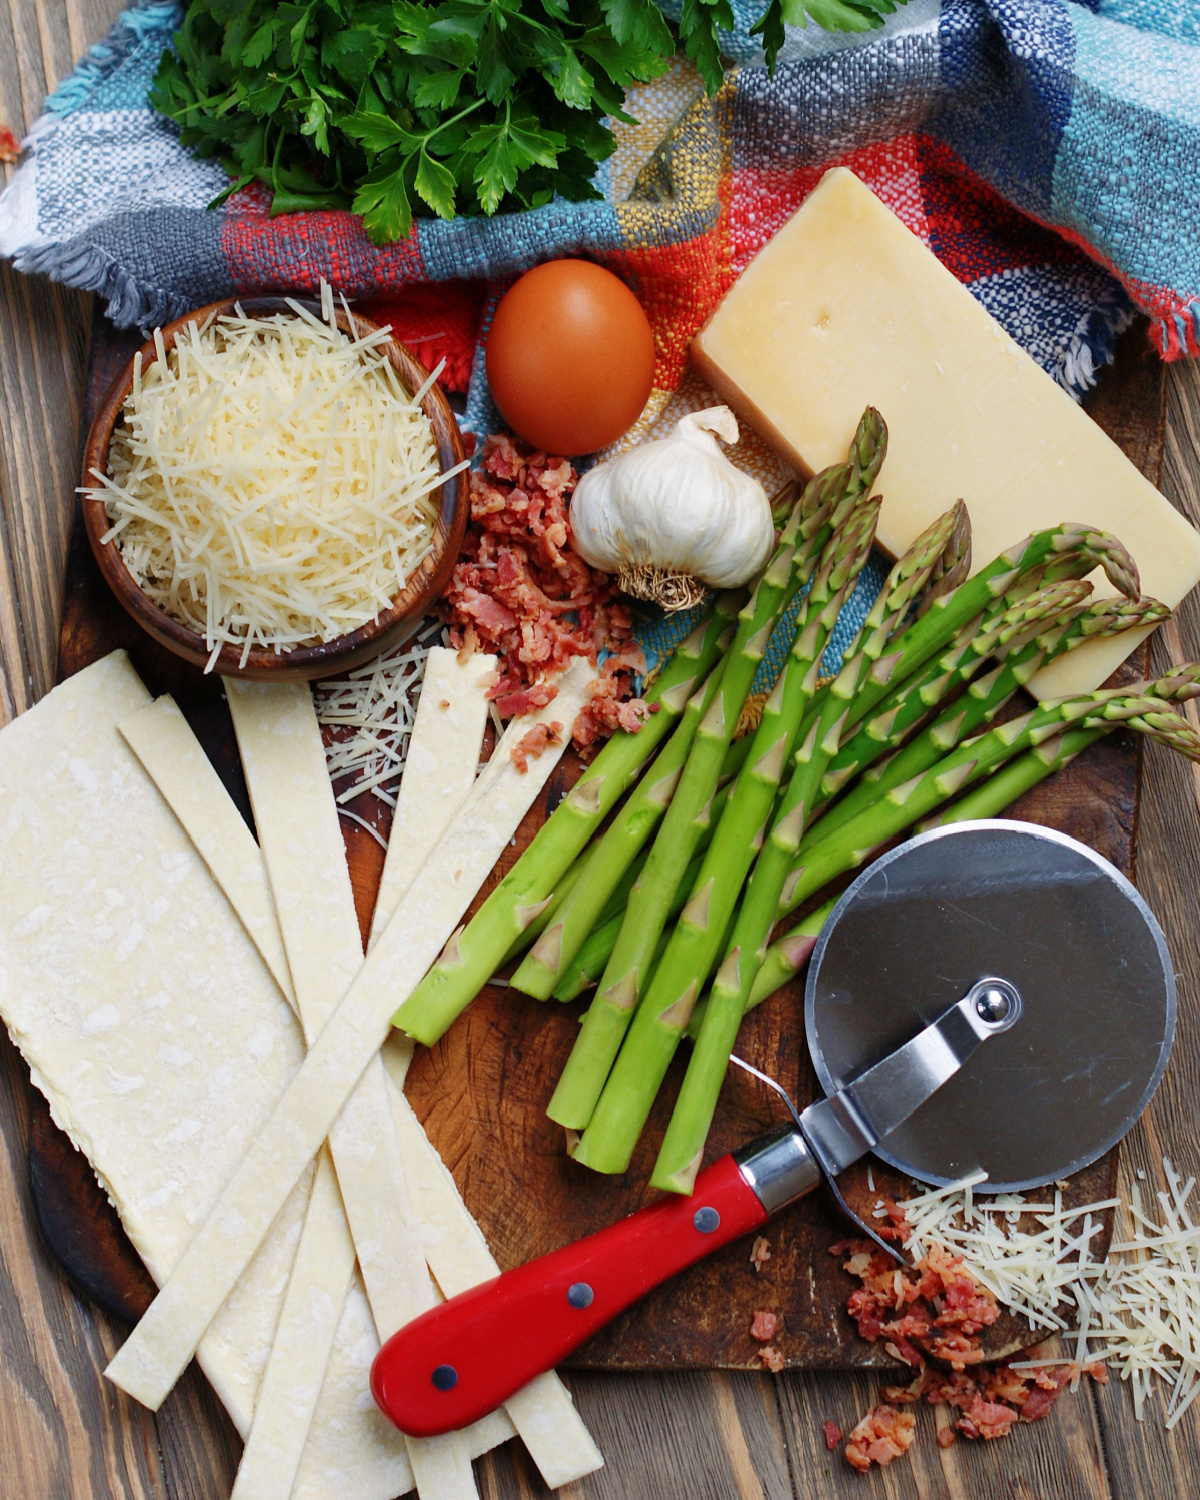 Ingredients for Bacon Parmesan Asparagus Twists